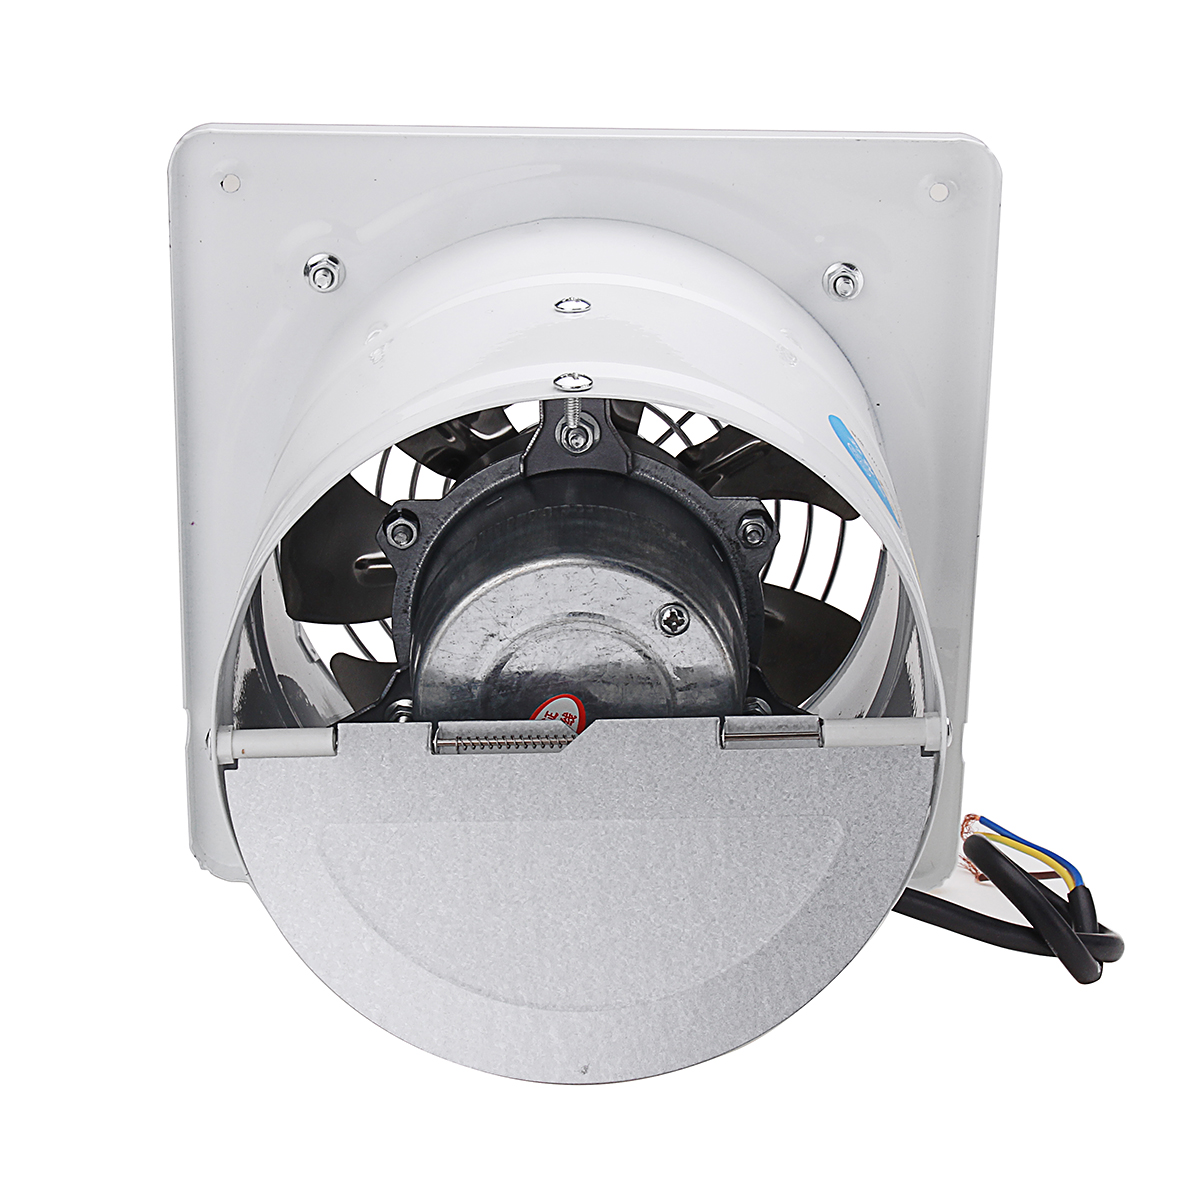 6 Inch 40w Inline Duct Booster Fan Extractor Exhaust And Intake Vent Fan Alexnld Com